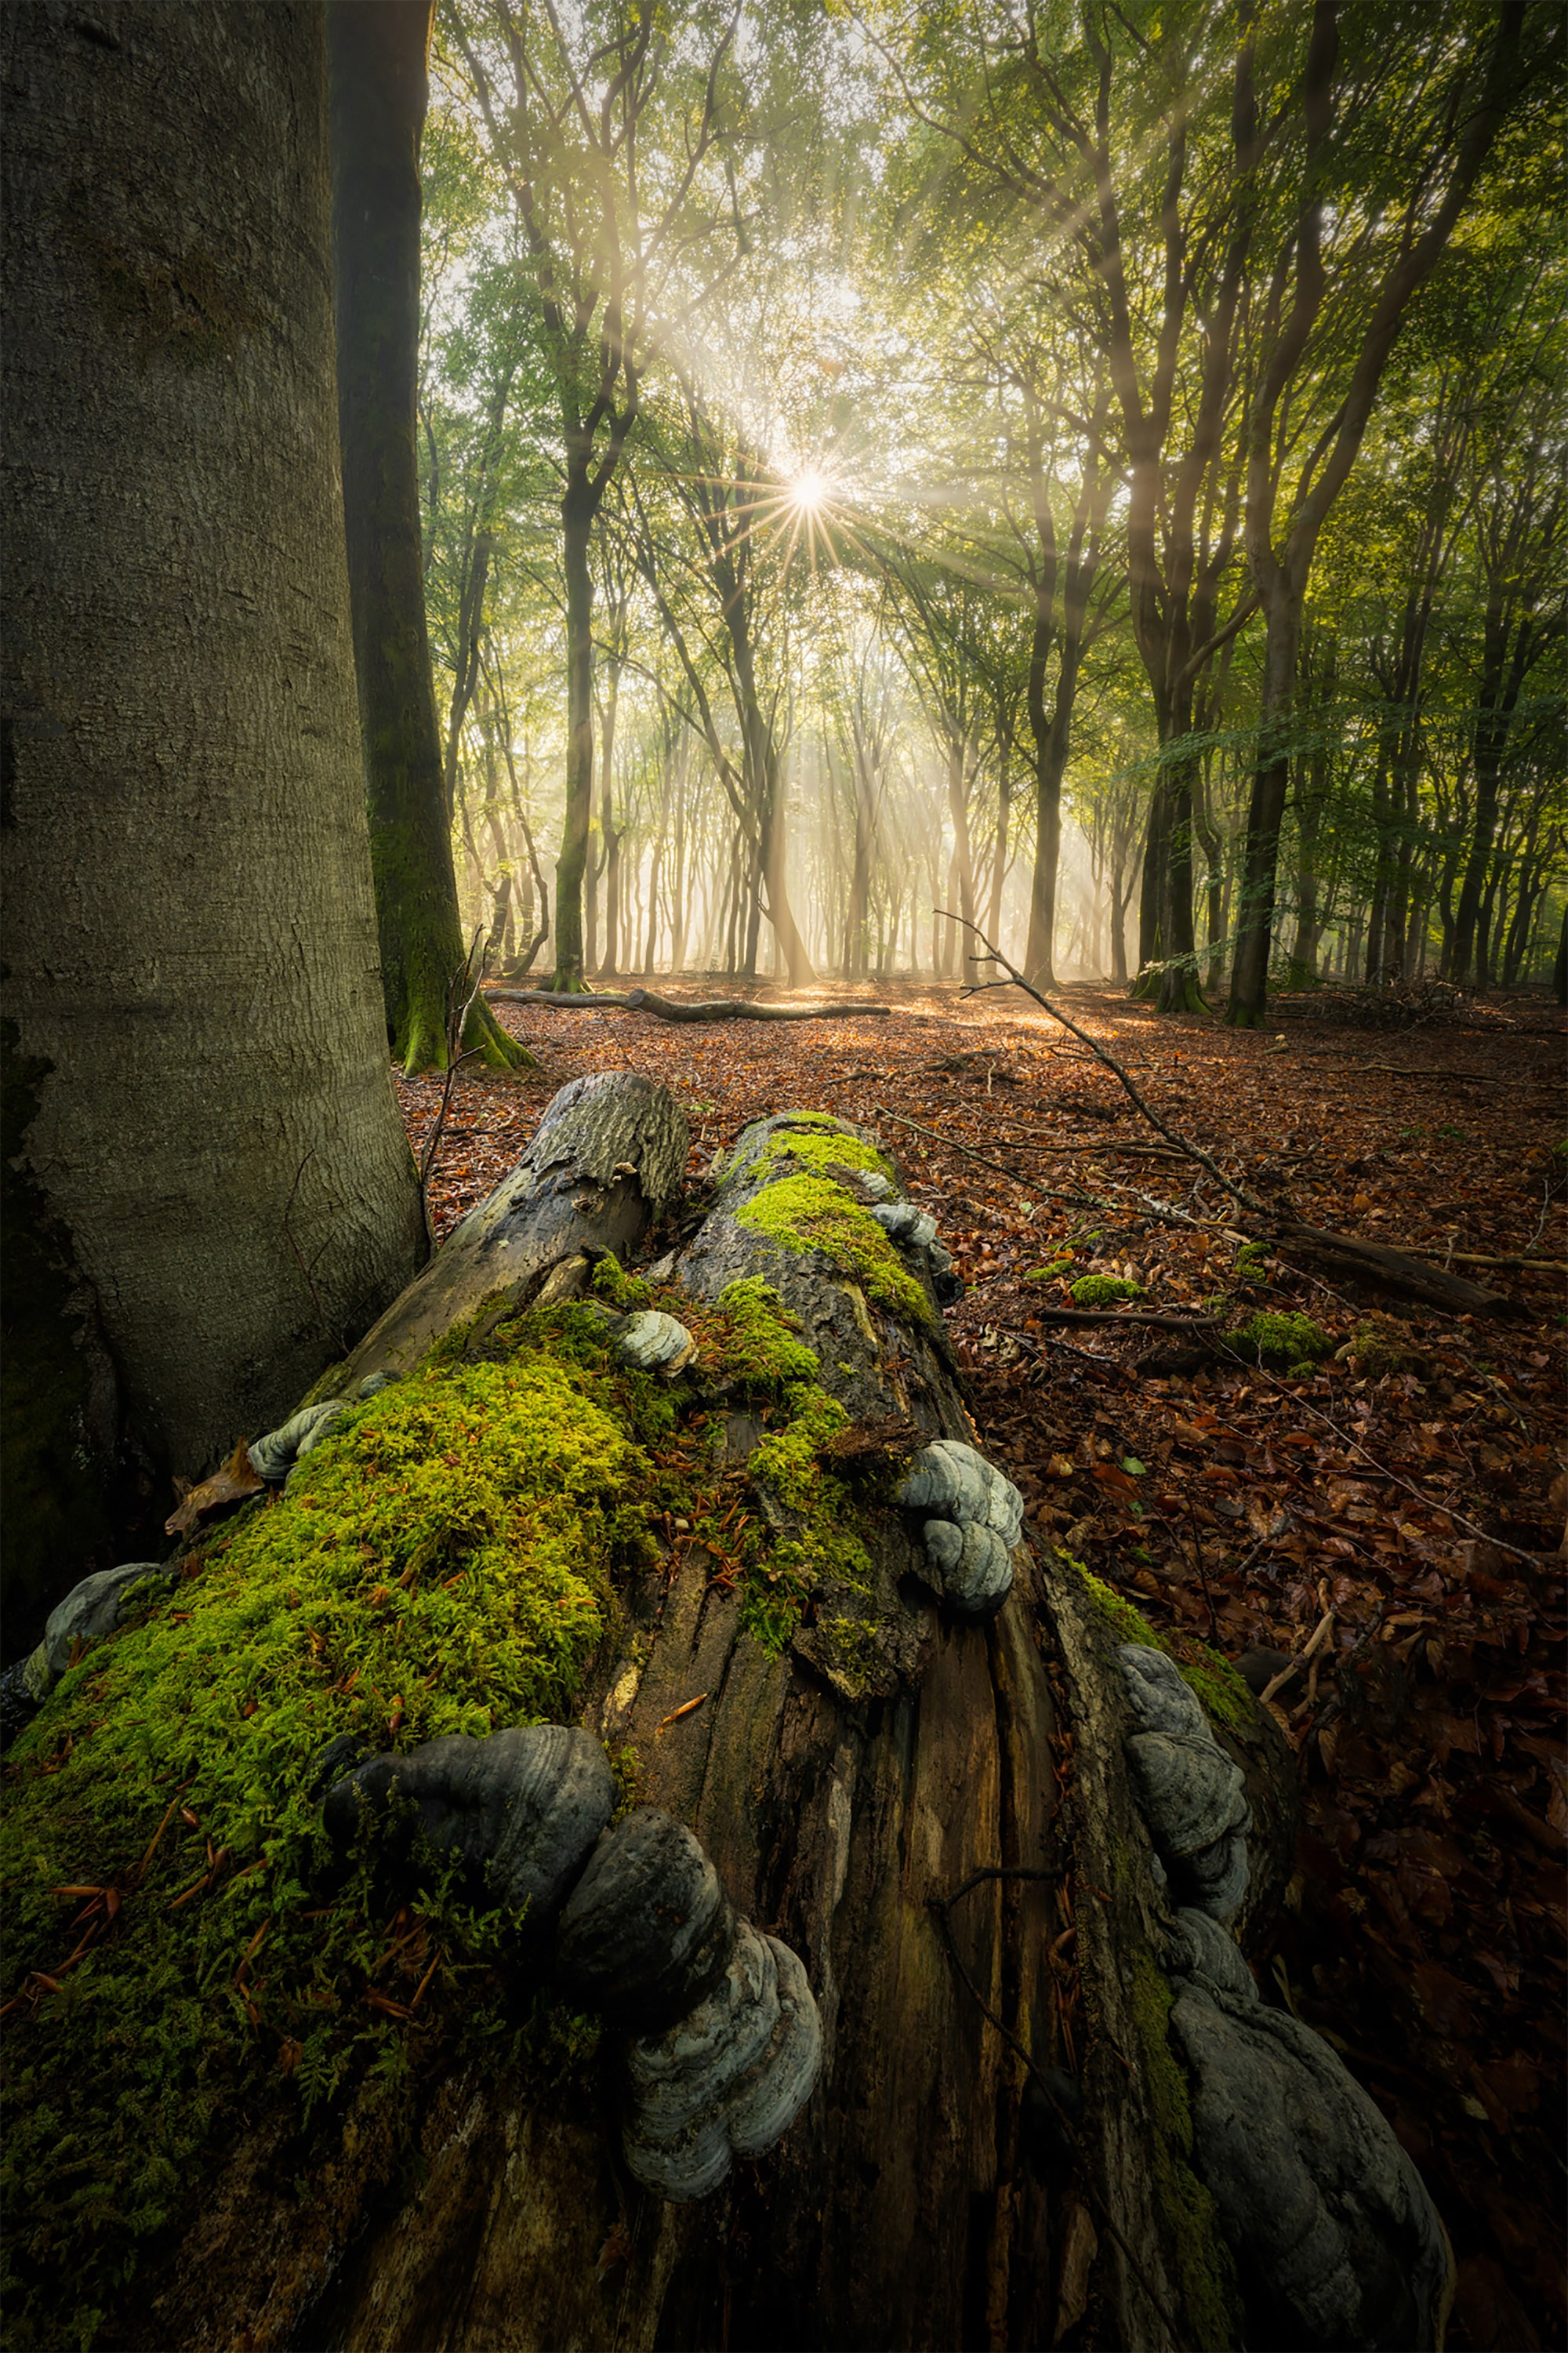 albert dros sony alpha 7RM4 a moss covered fallen tree in a forest in the netherlands